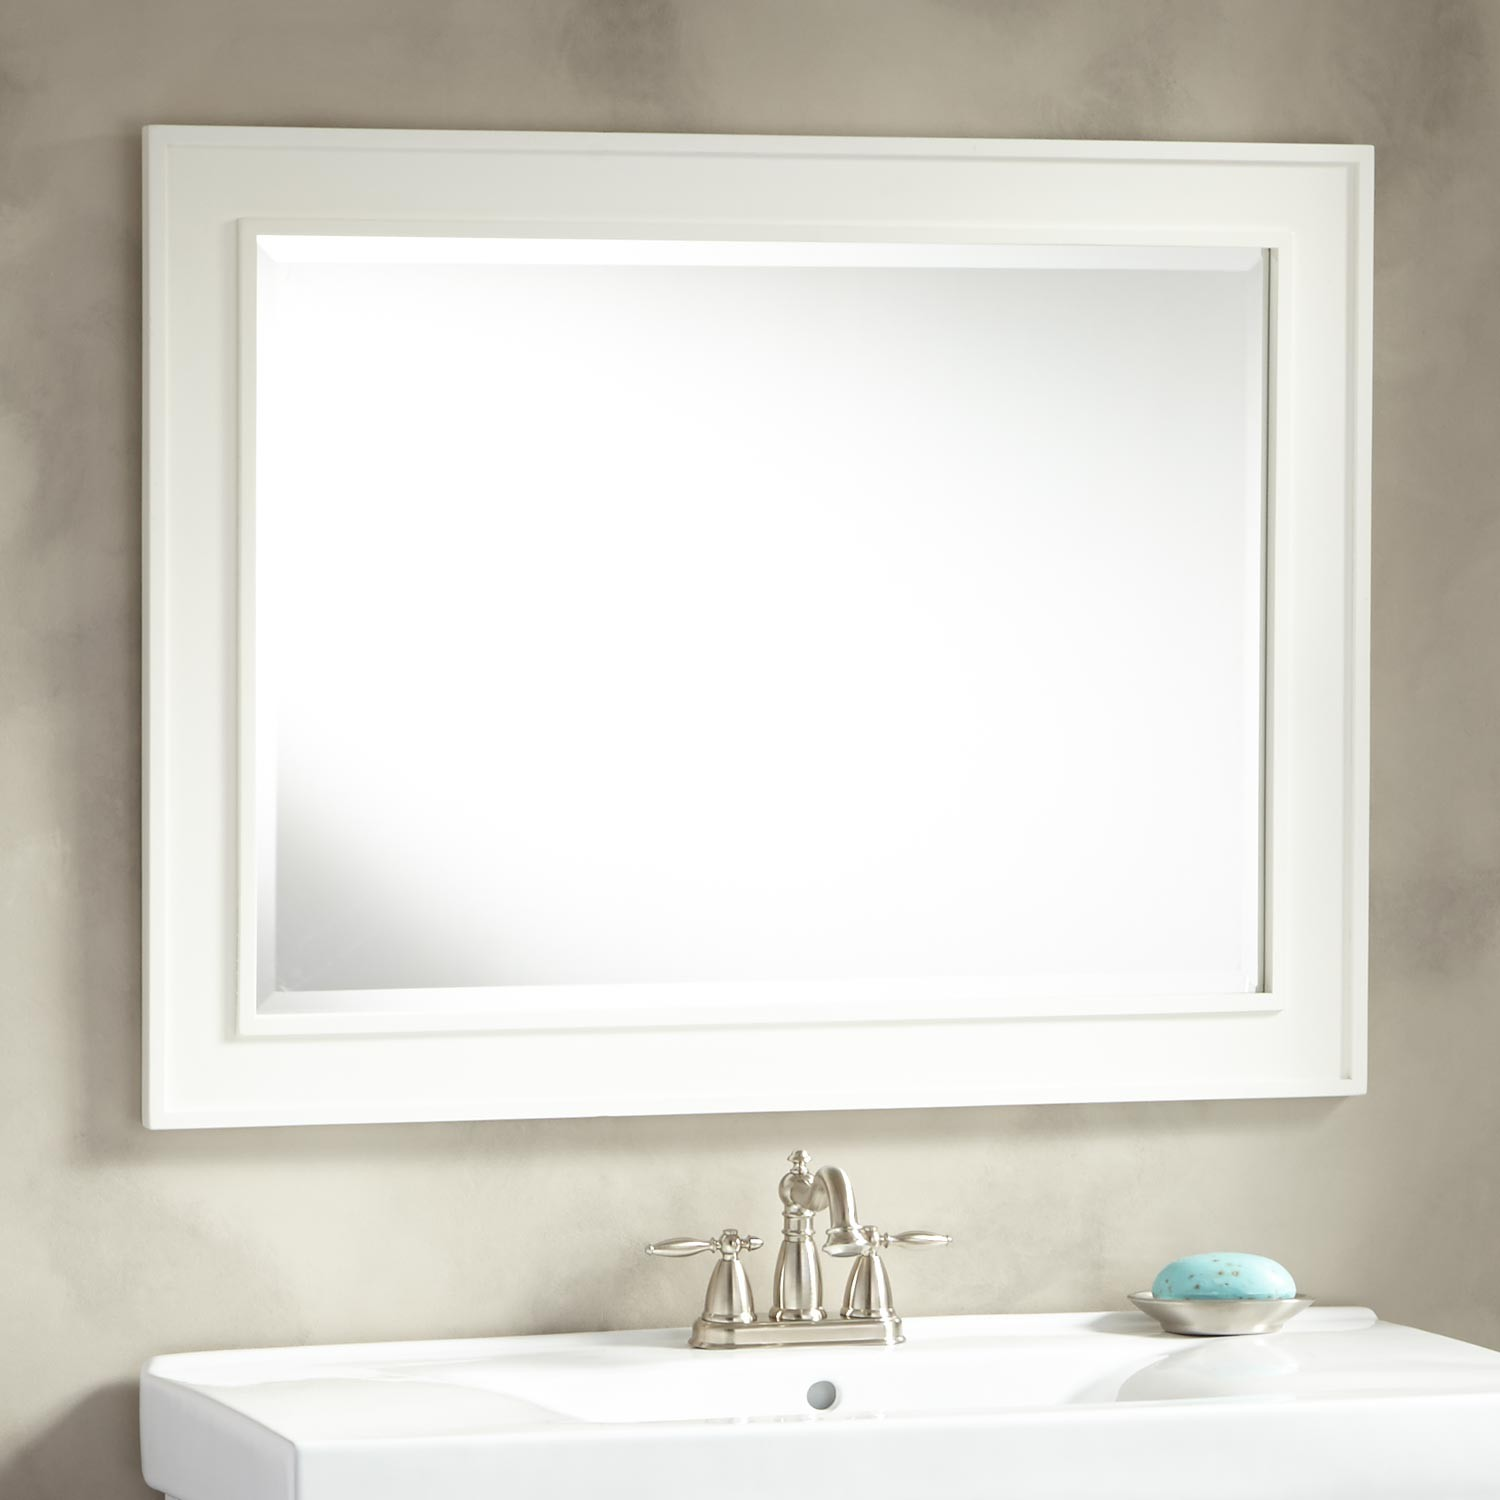 Image of: White Frame Mirror for Bathroom Design